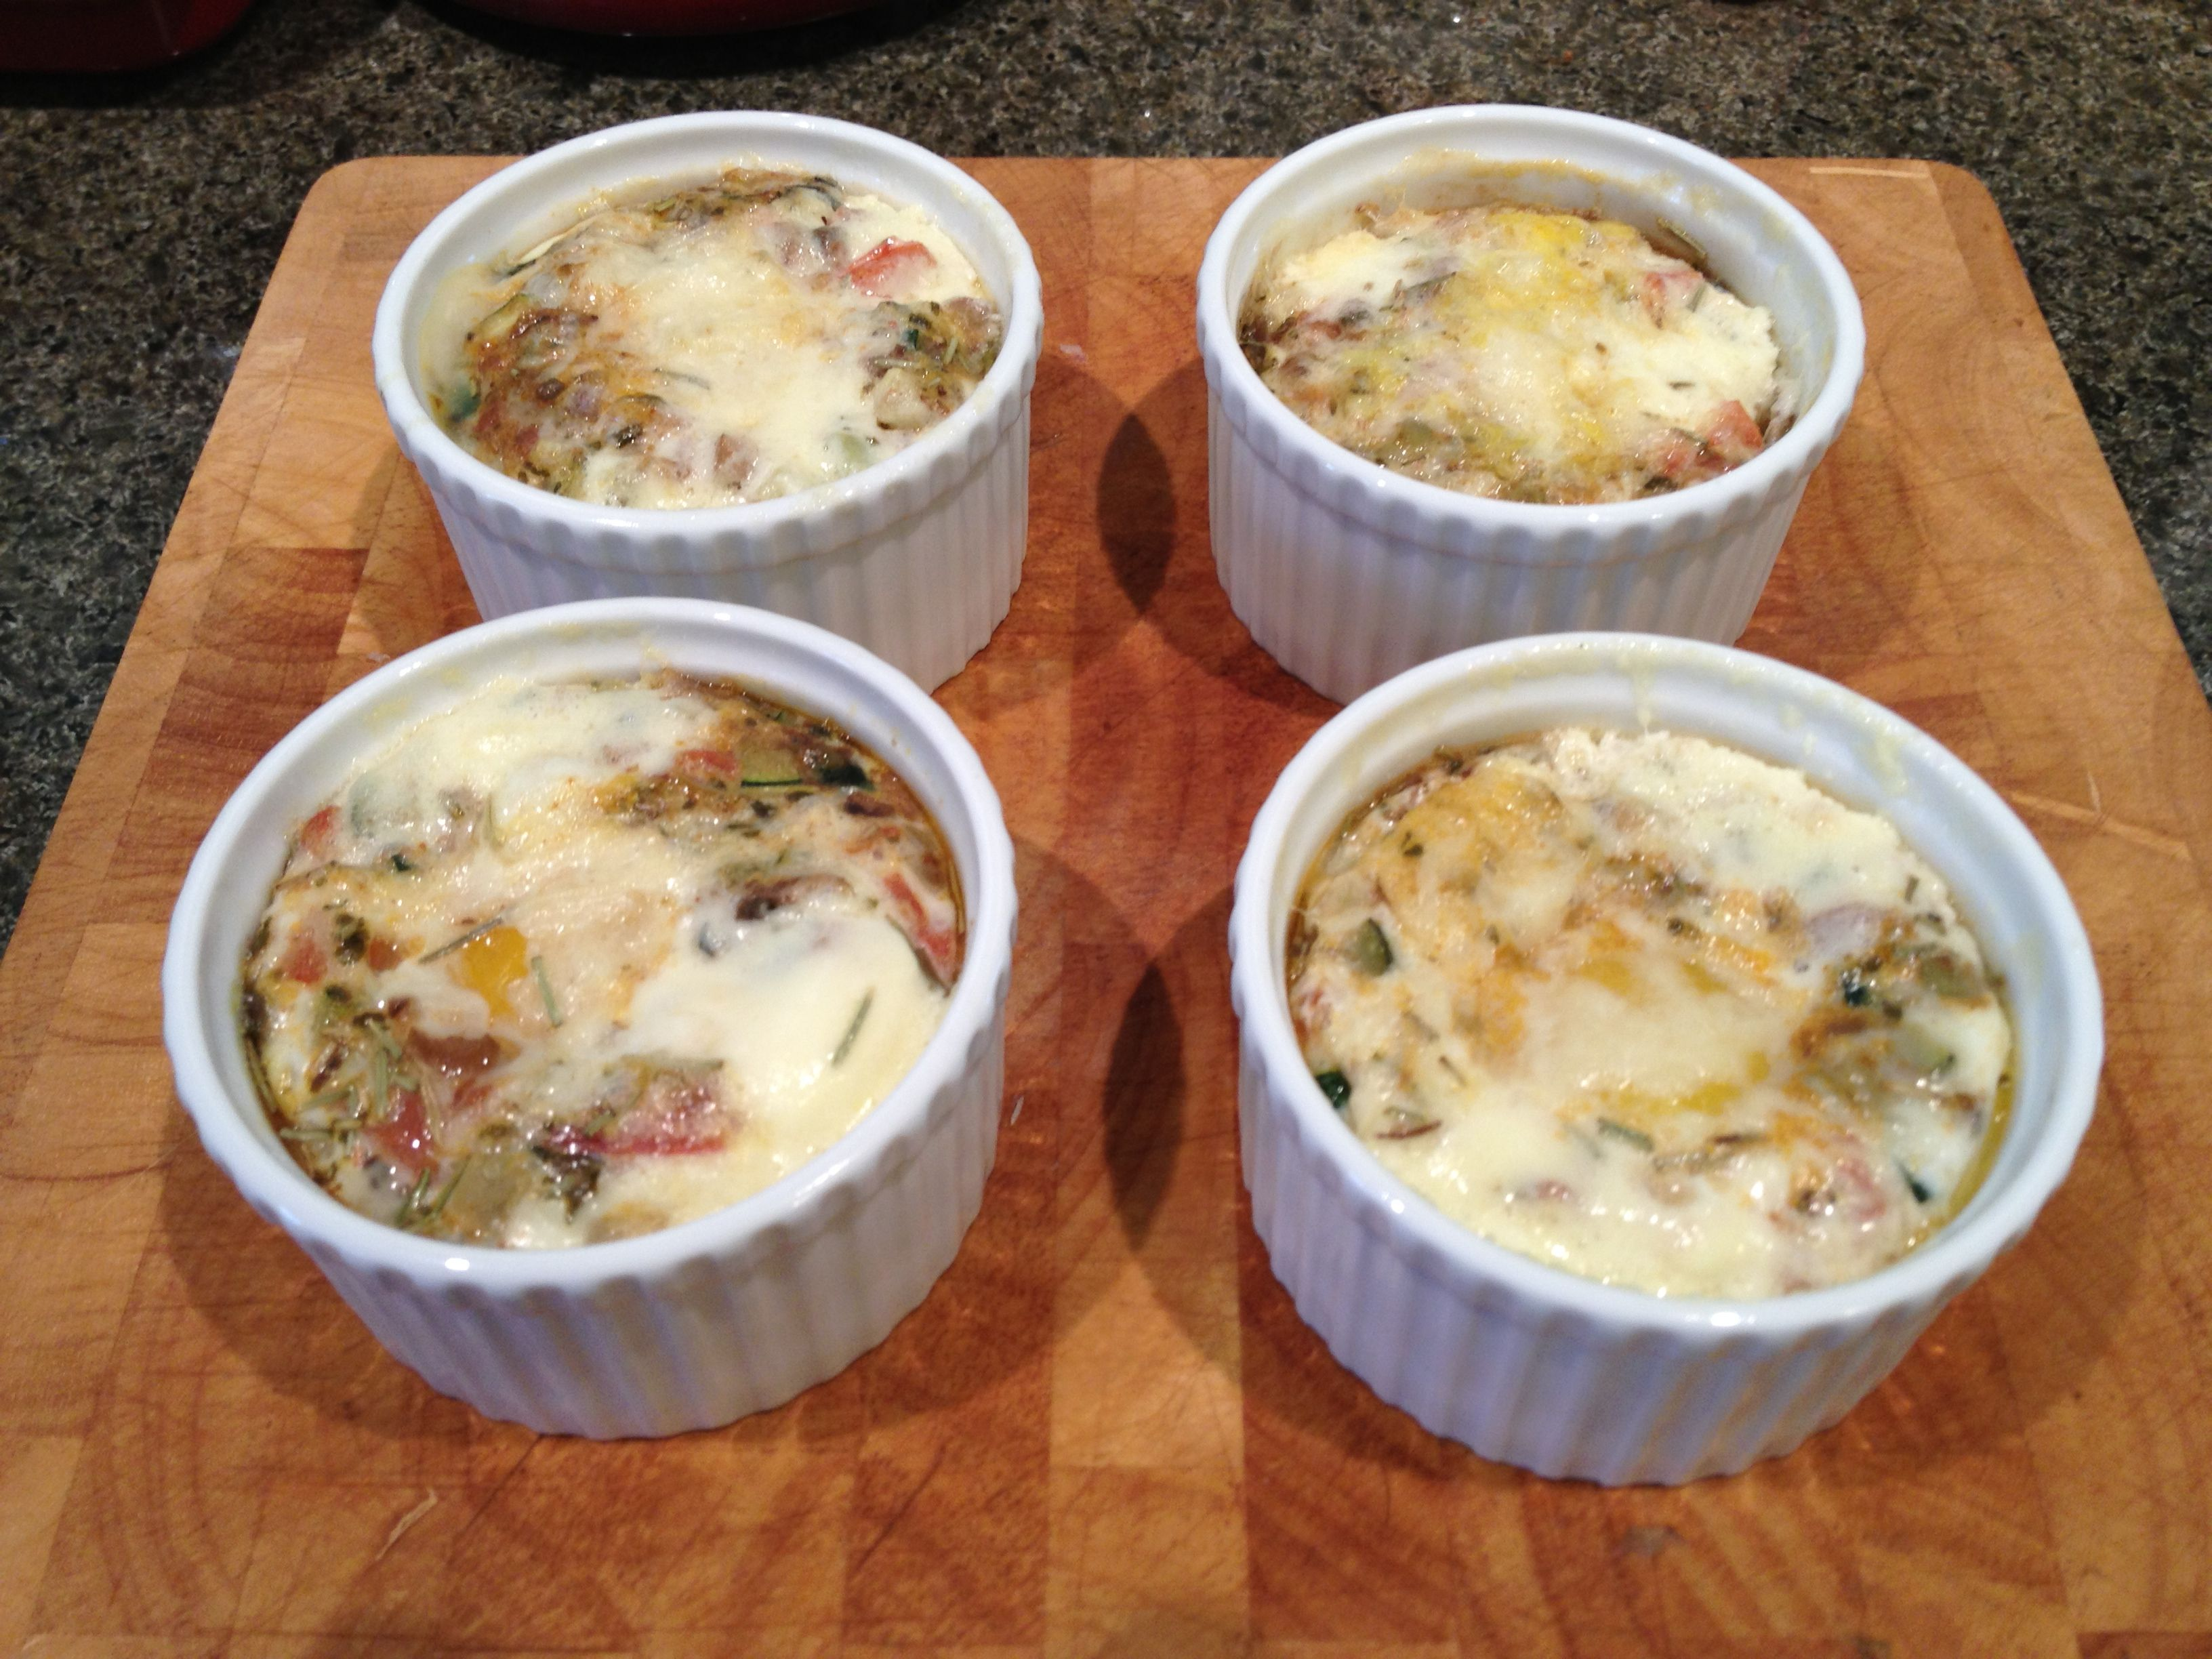 Baked Eggs With Creme Fraiche Rosemary Tomato Black